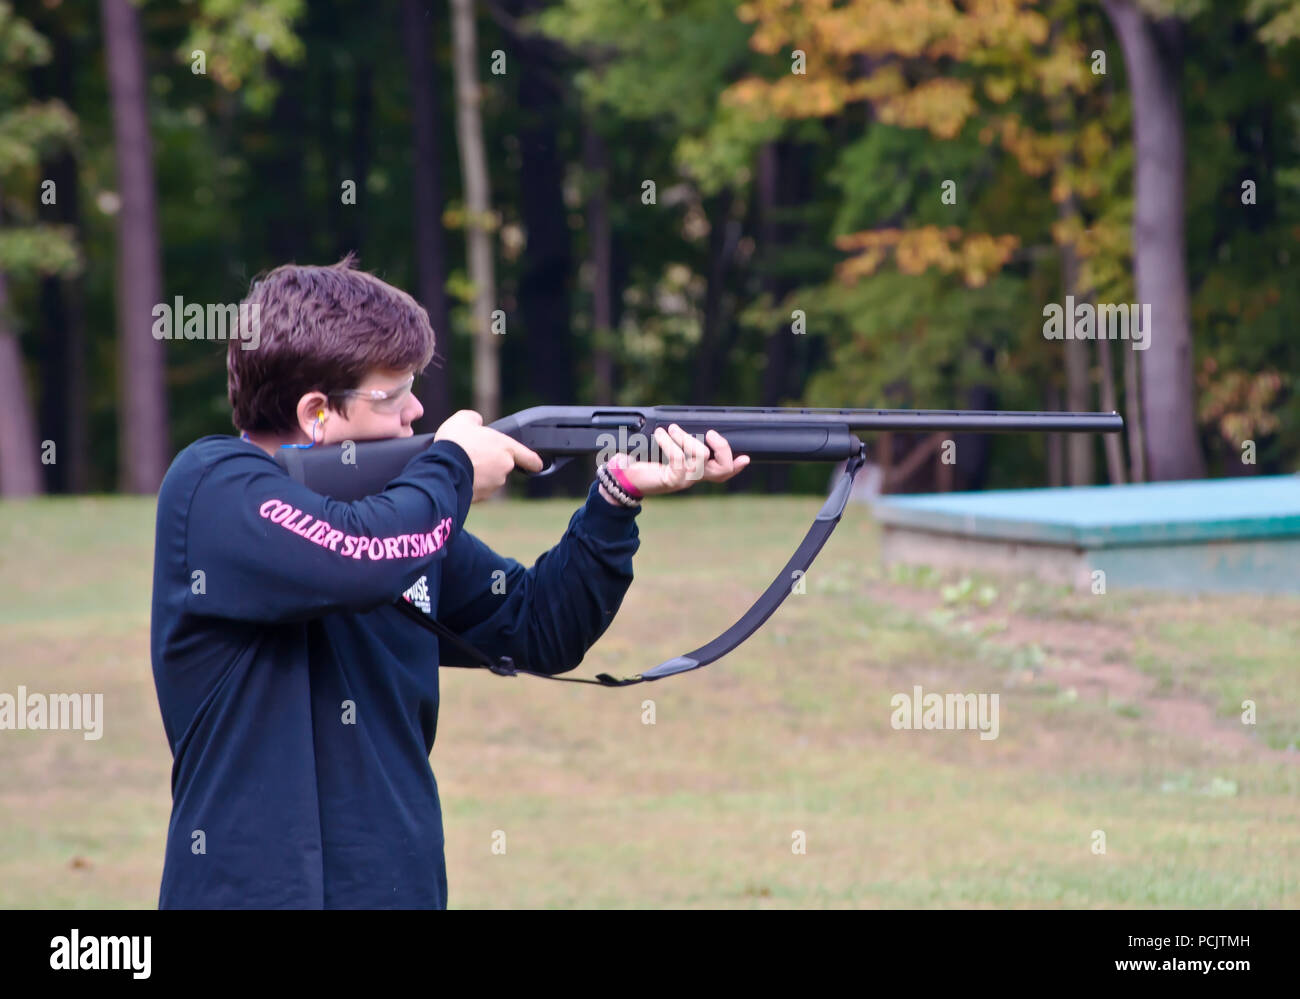 A young man taking aim on the line trap shooting at the Collier's Sportsman club in Collier, PA, USA Stock Photo